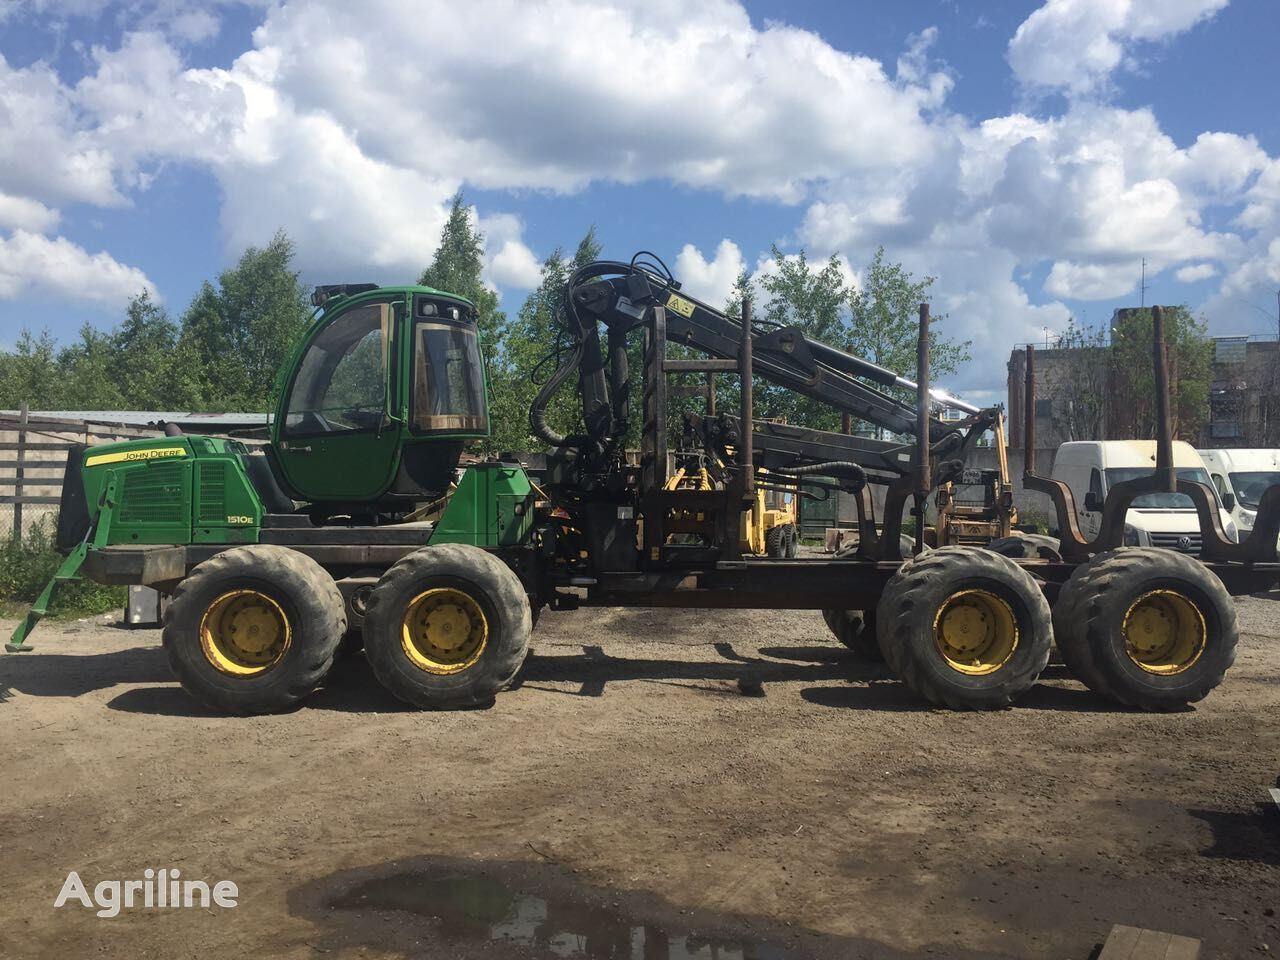 JOHN DEERE 1510E forwarder